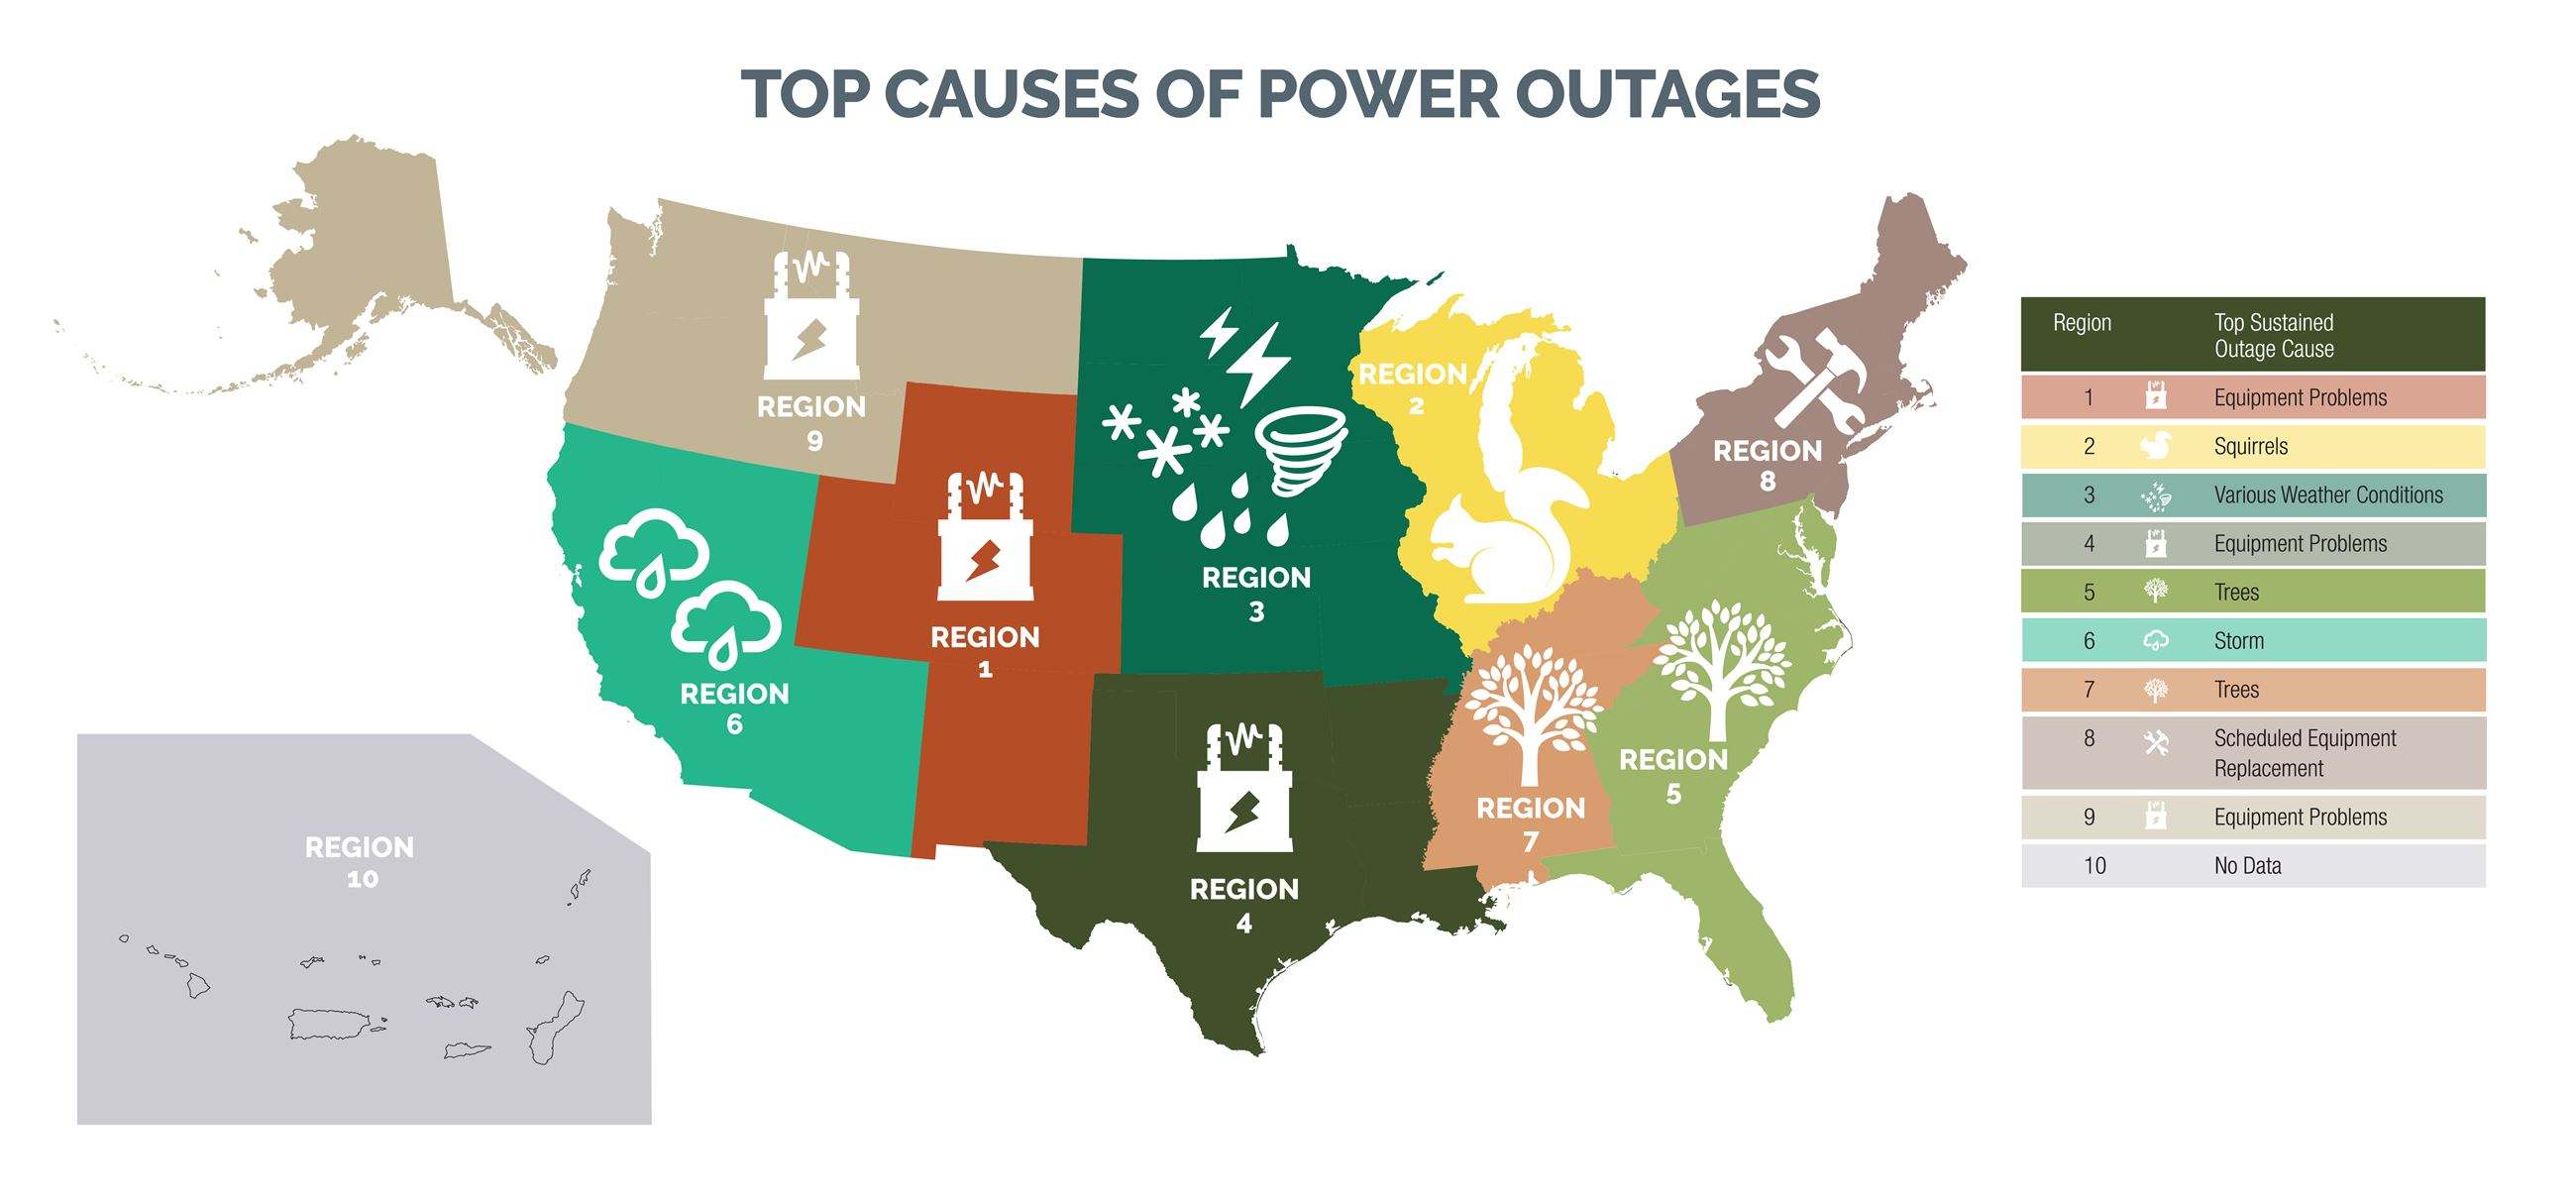 Top Causes of Outages